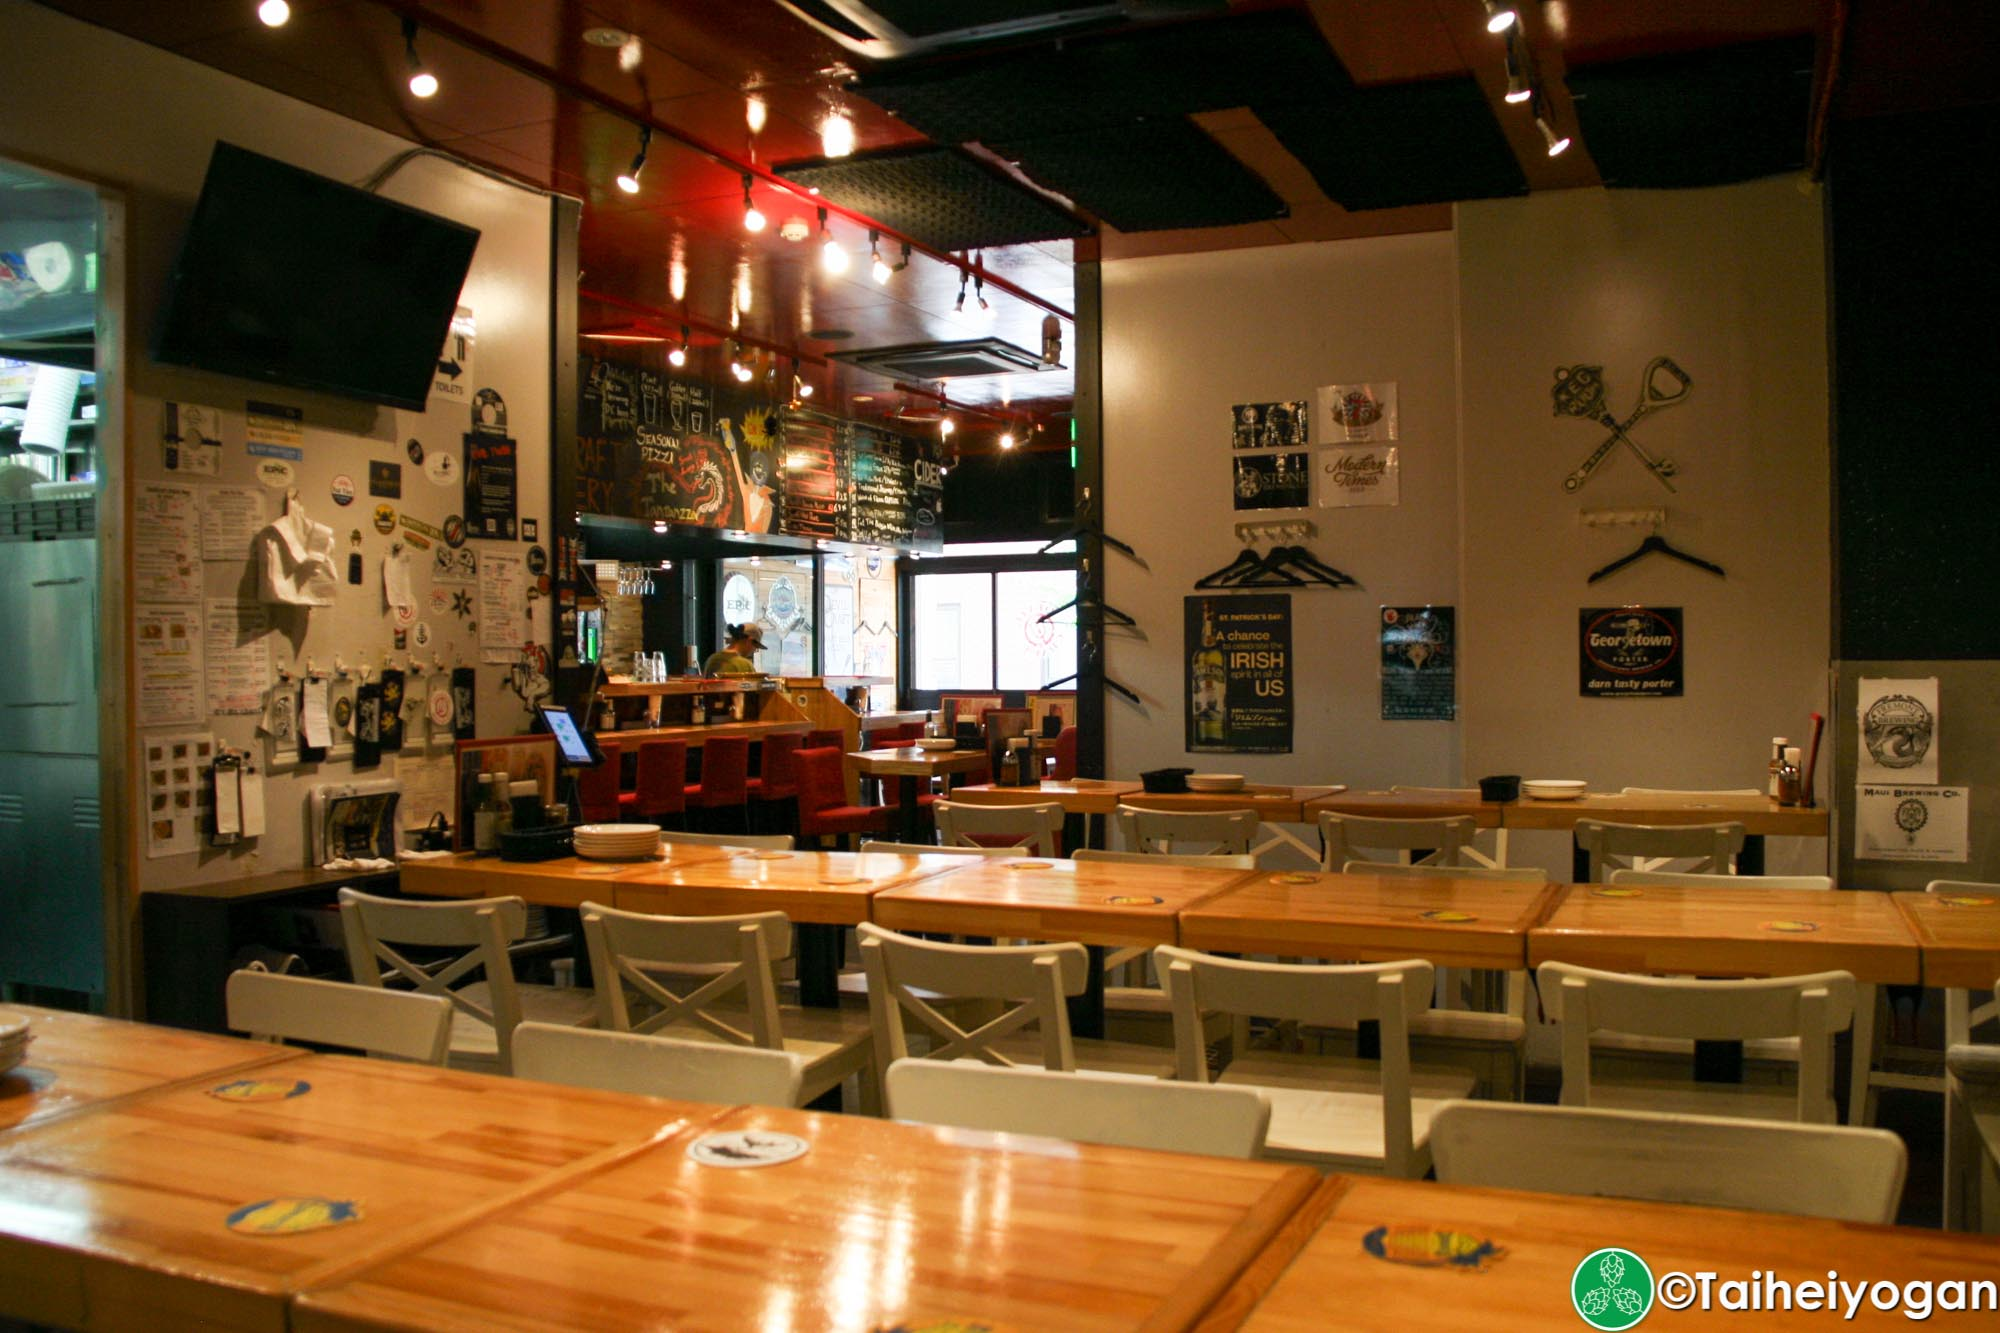 DevilCraft (Hamamtsucho・浜松町店) - Interior - Seating Area